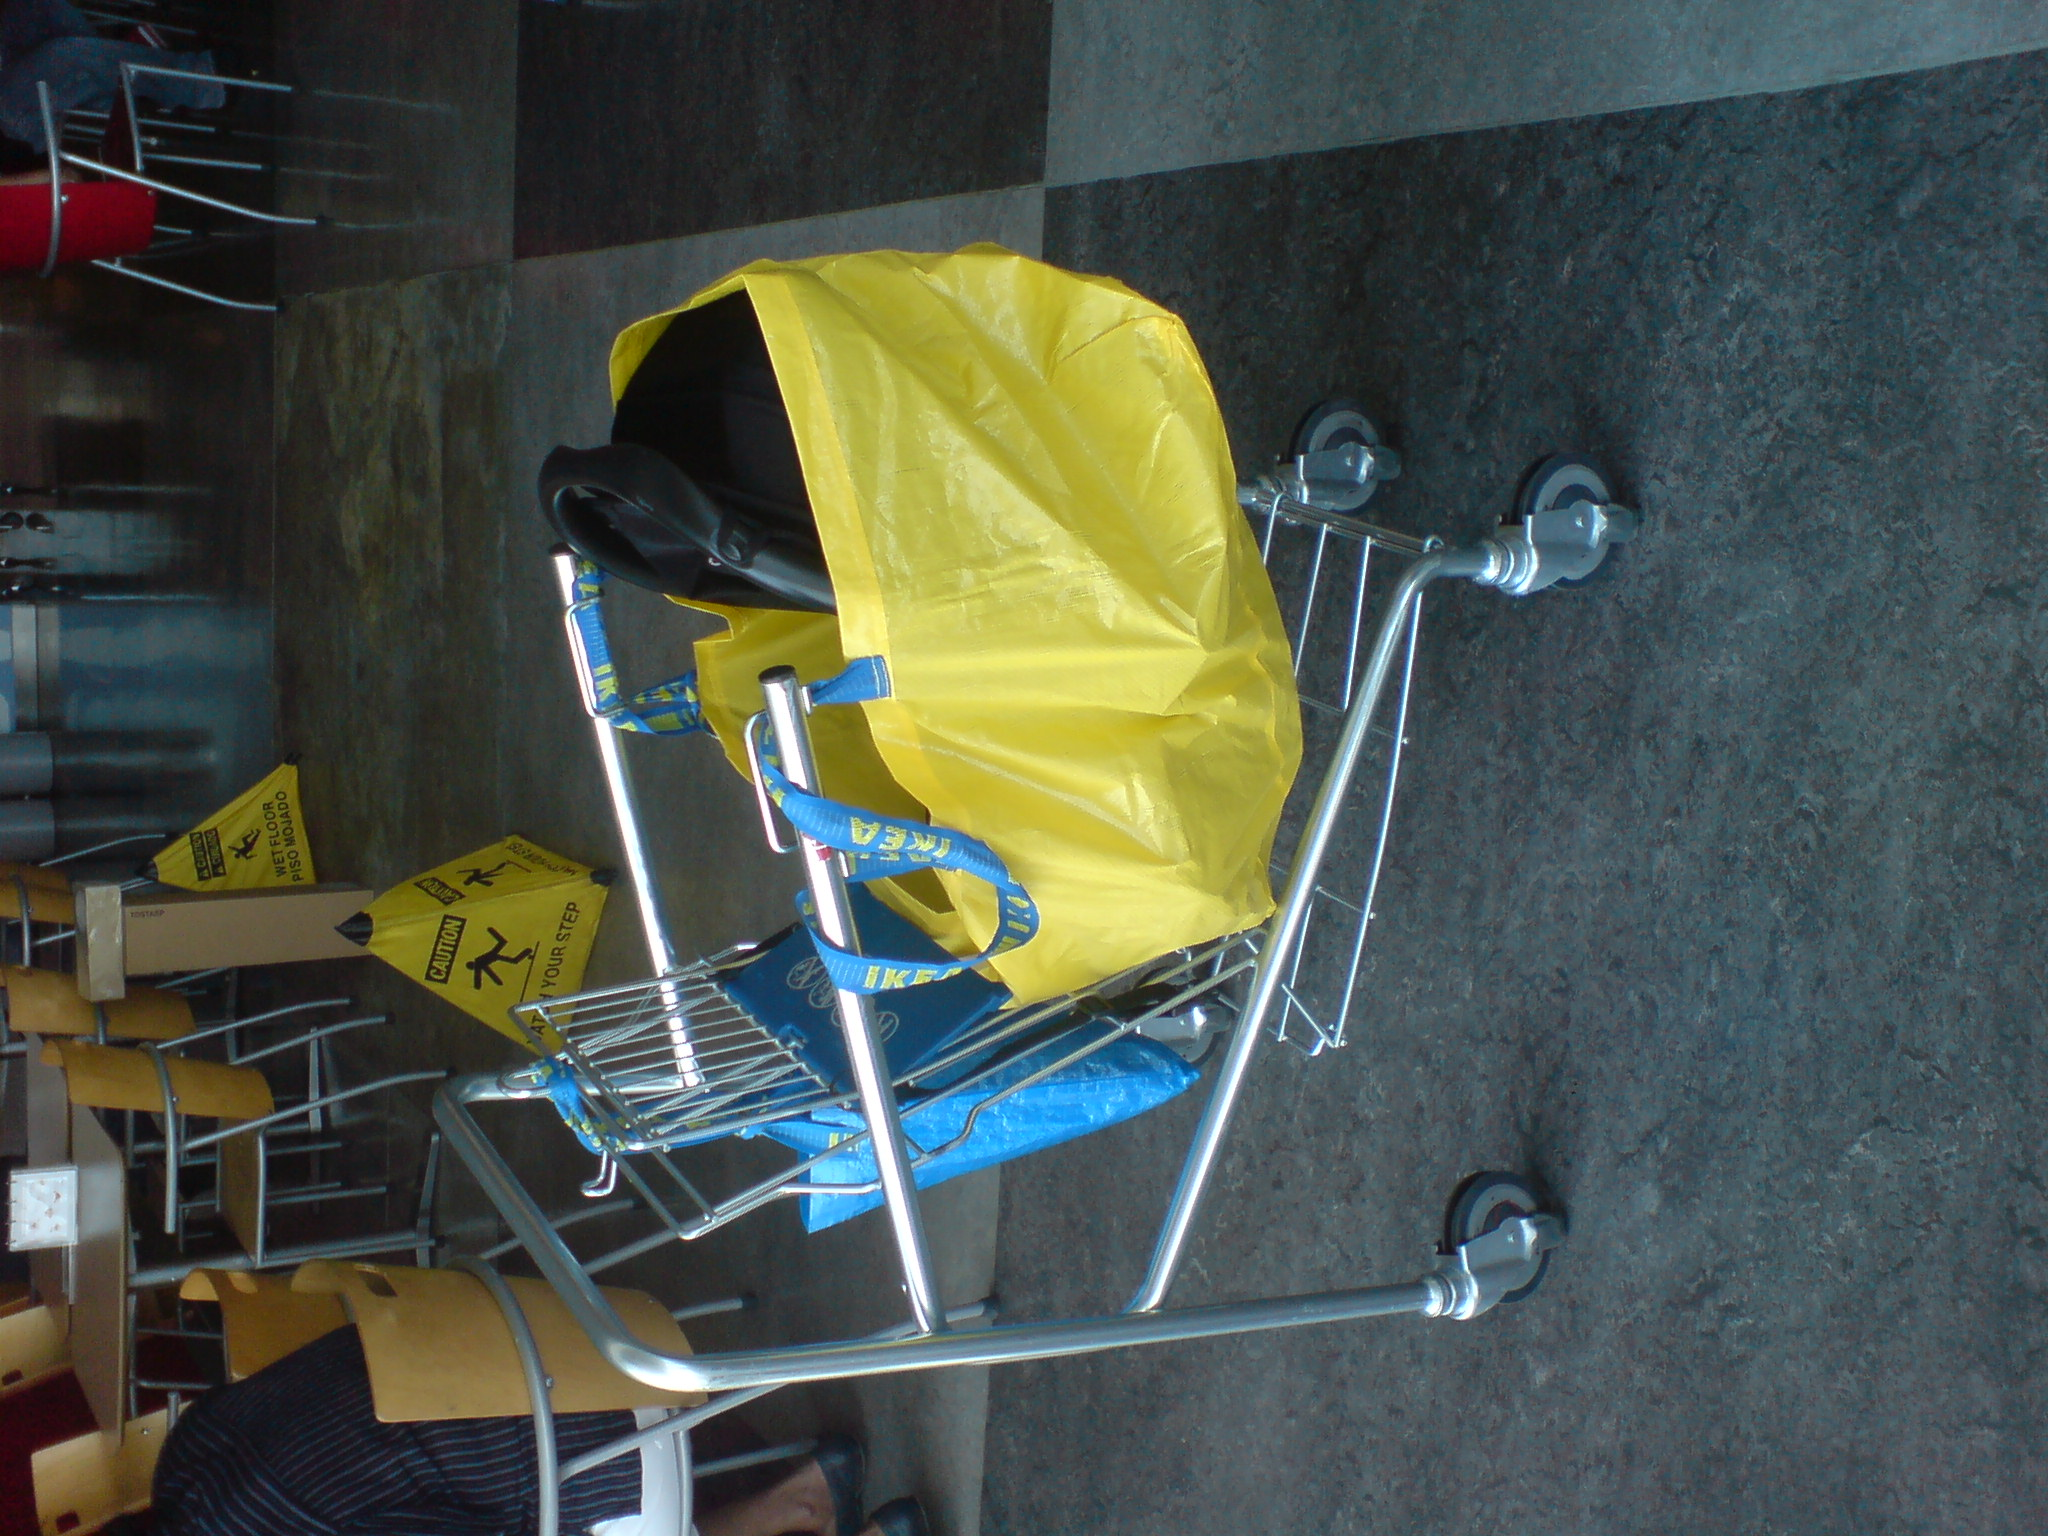 Back to photostream for Ikea luggage cart